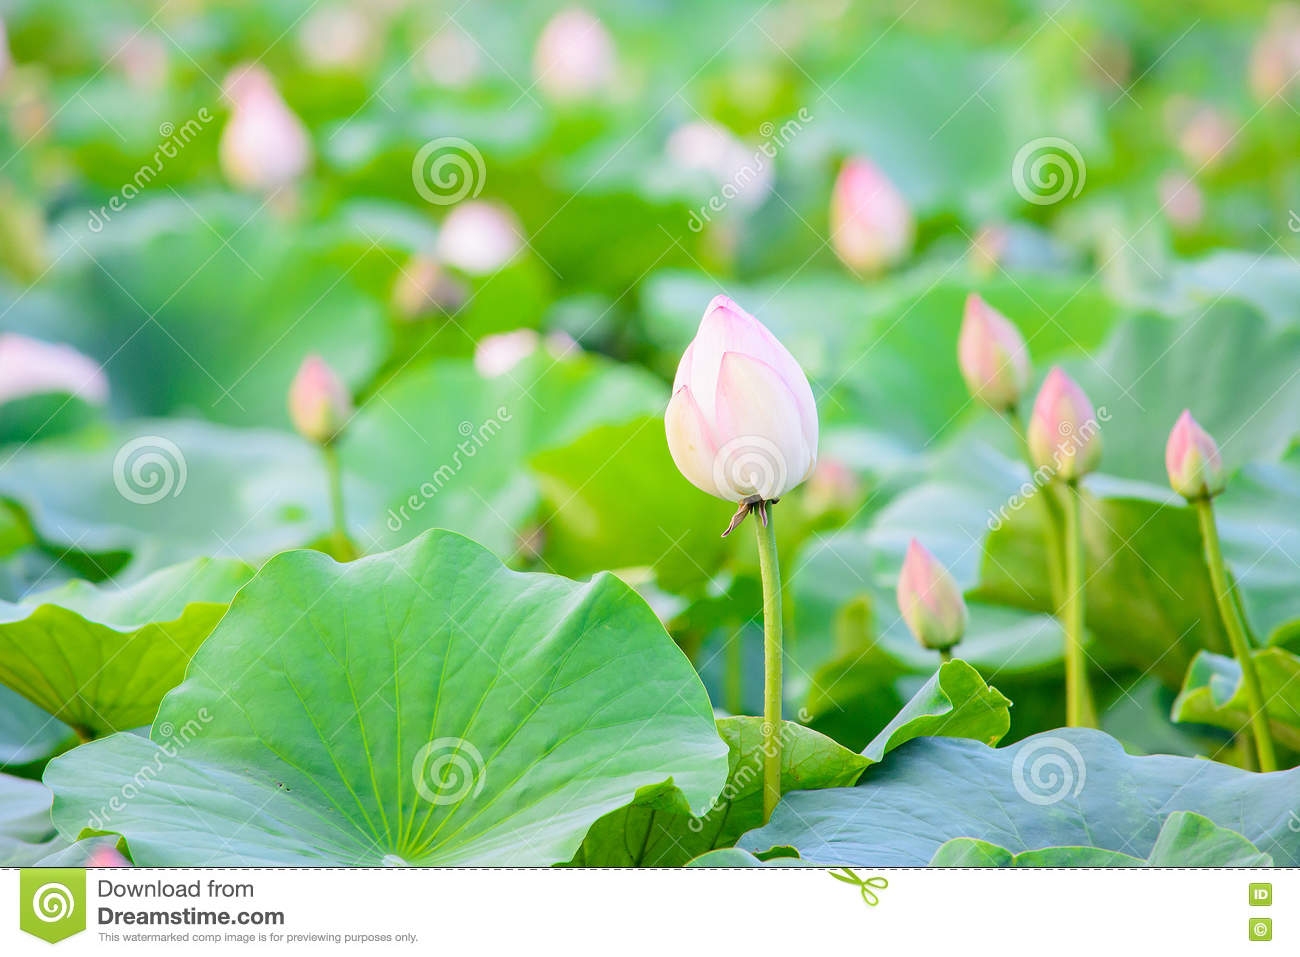 Lotus Flower Gardenlotus Pond Stock Image Image Of Aquatic